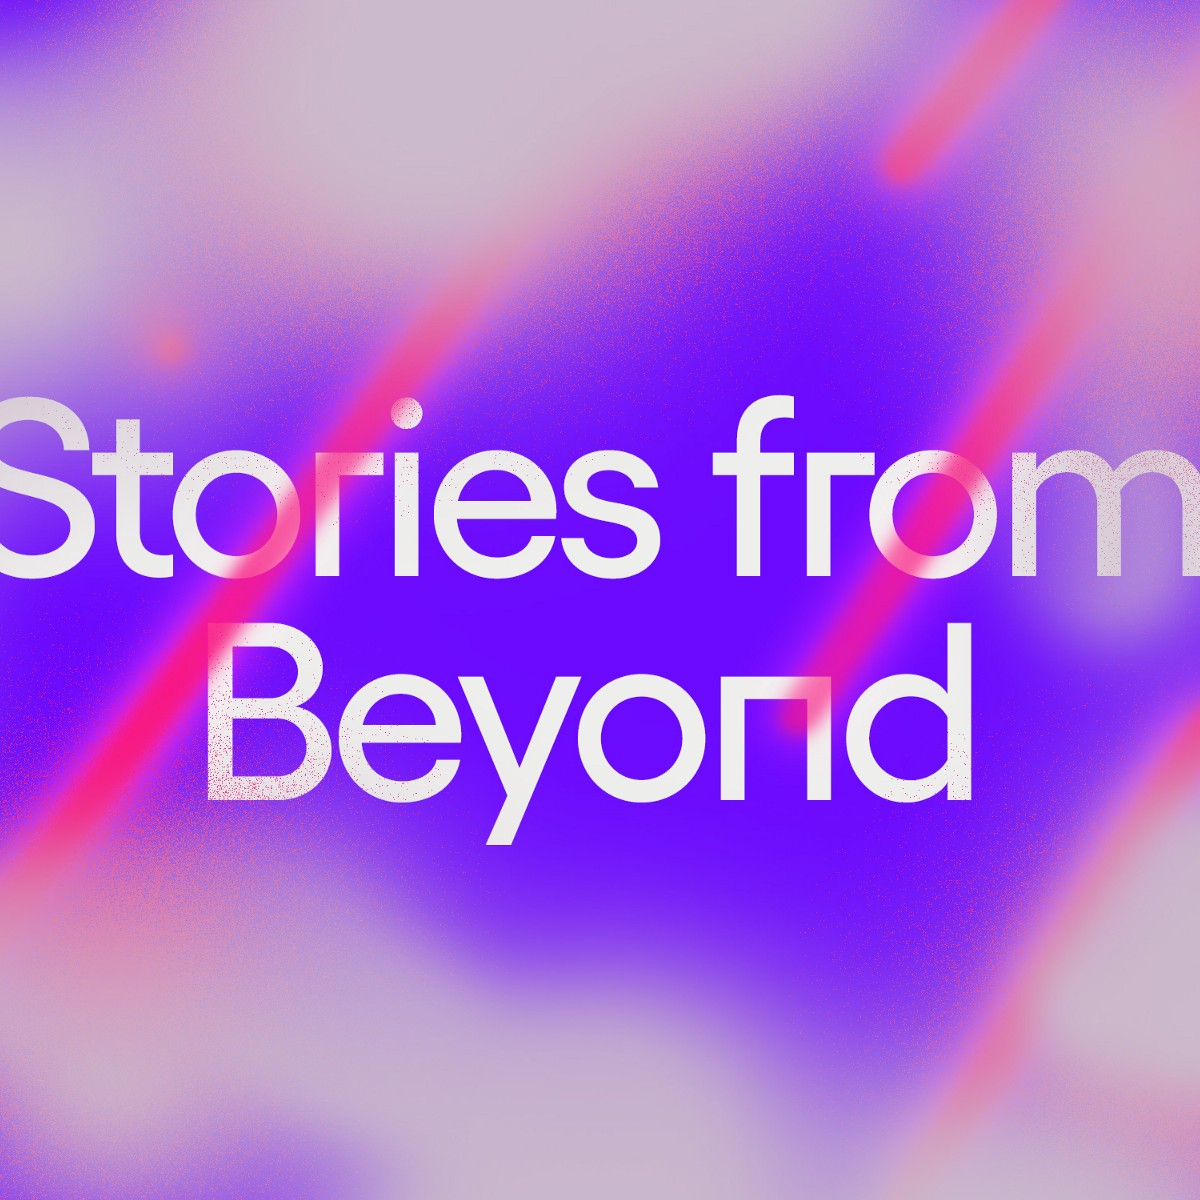 Stories From Beyond: The Articles We Loved in 2019